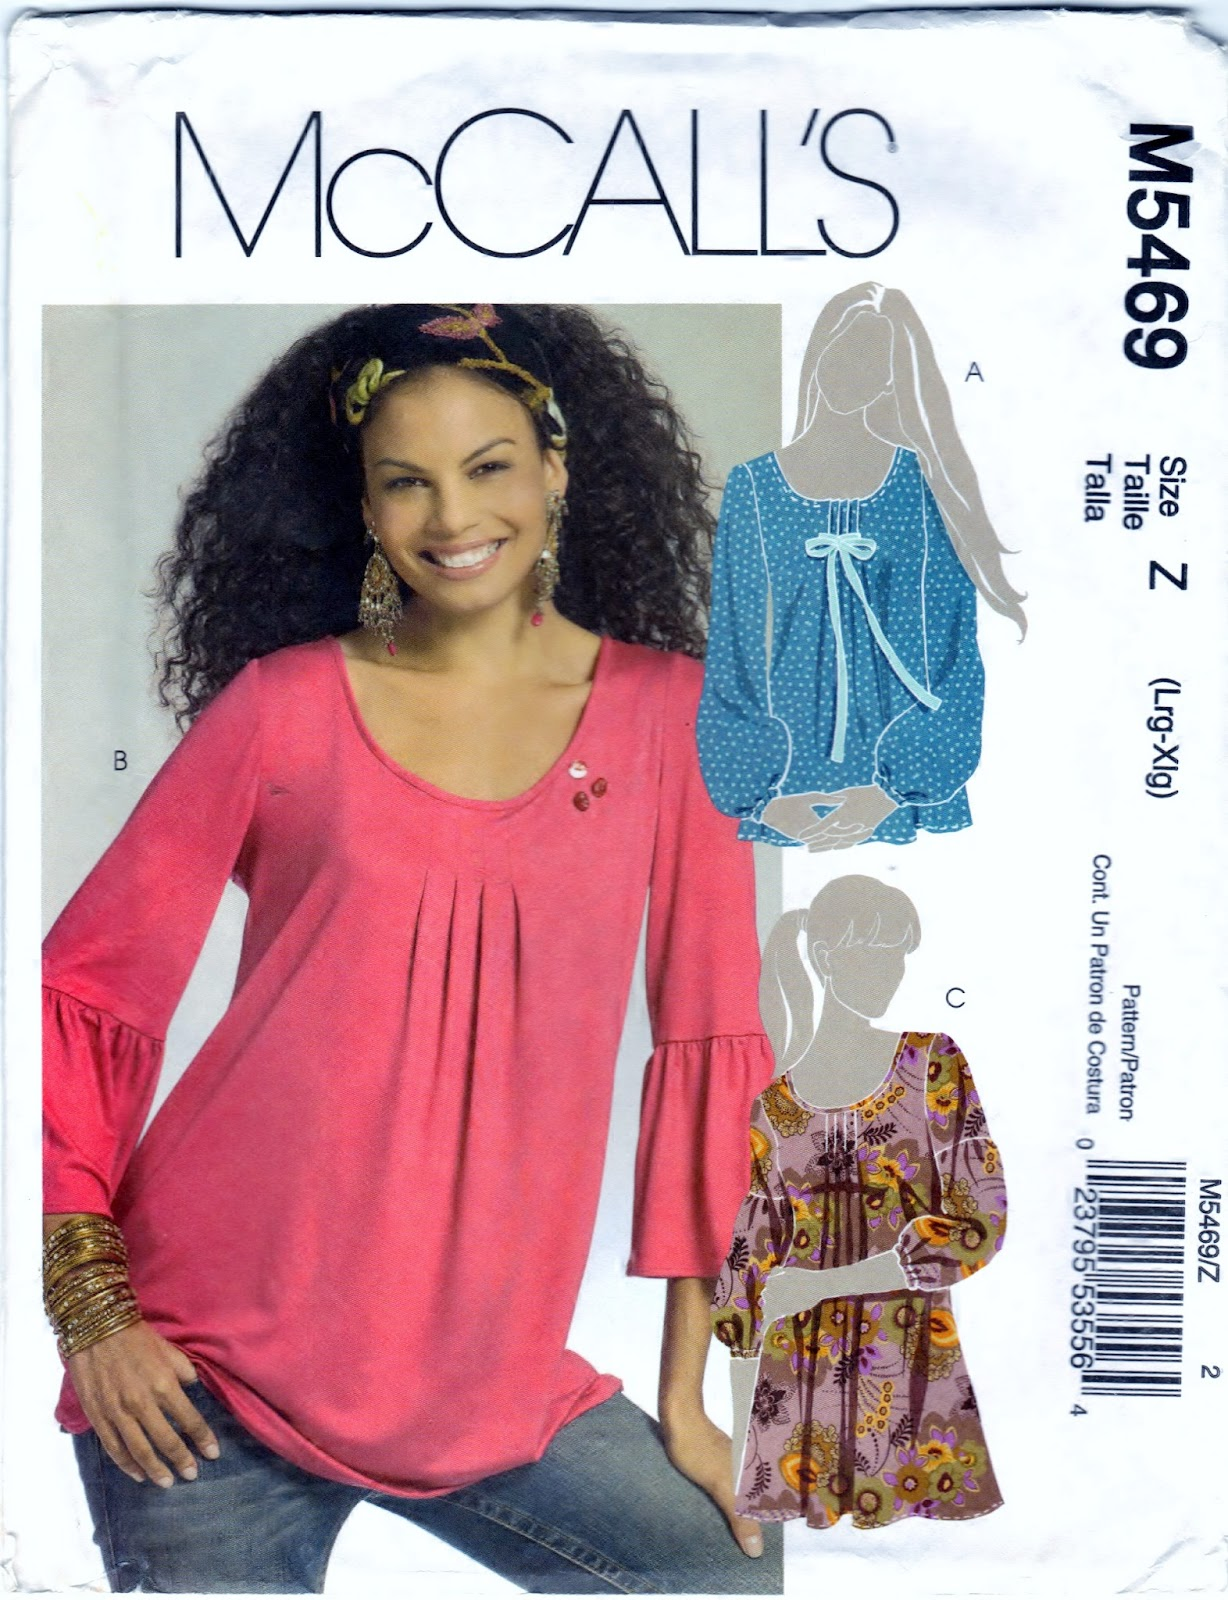 https://www.etsy.com/listing/220300313/mccalls-5469-sewing-craft-pattern-misses